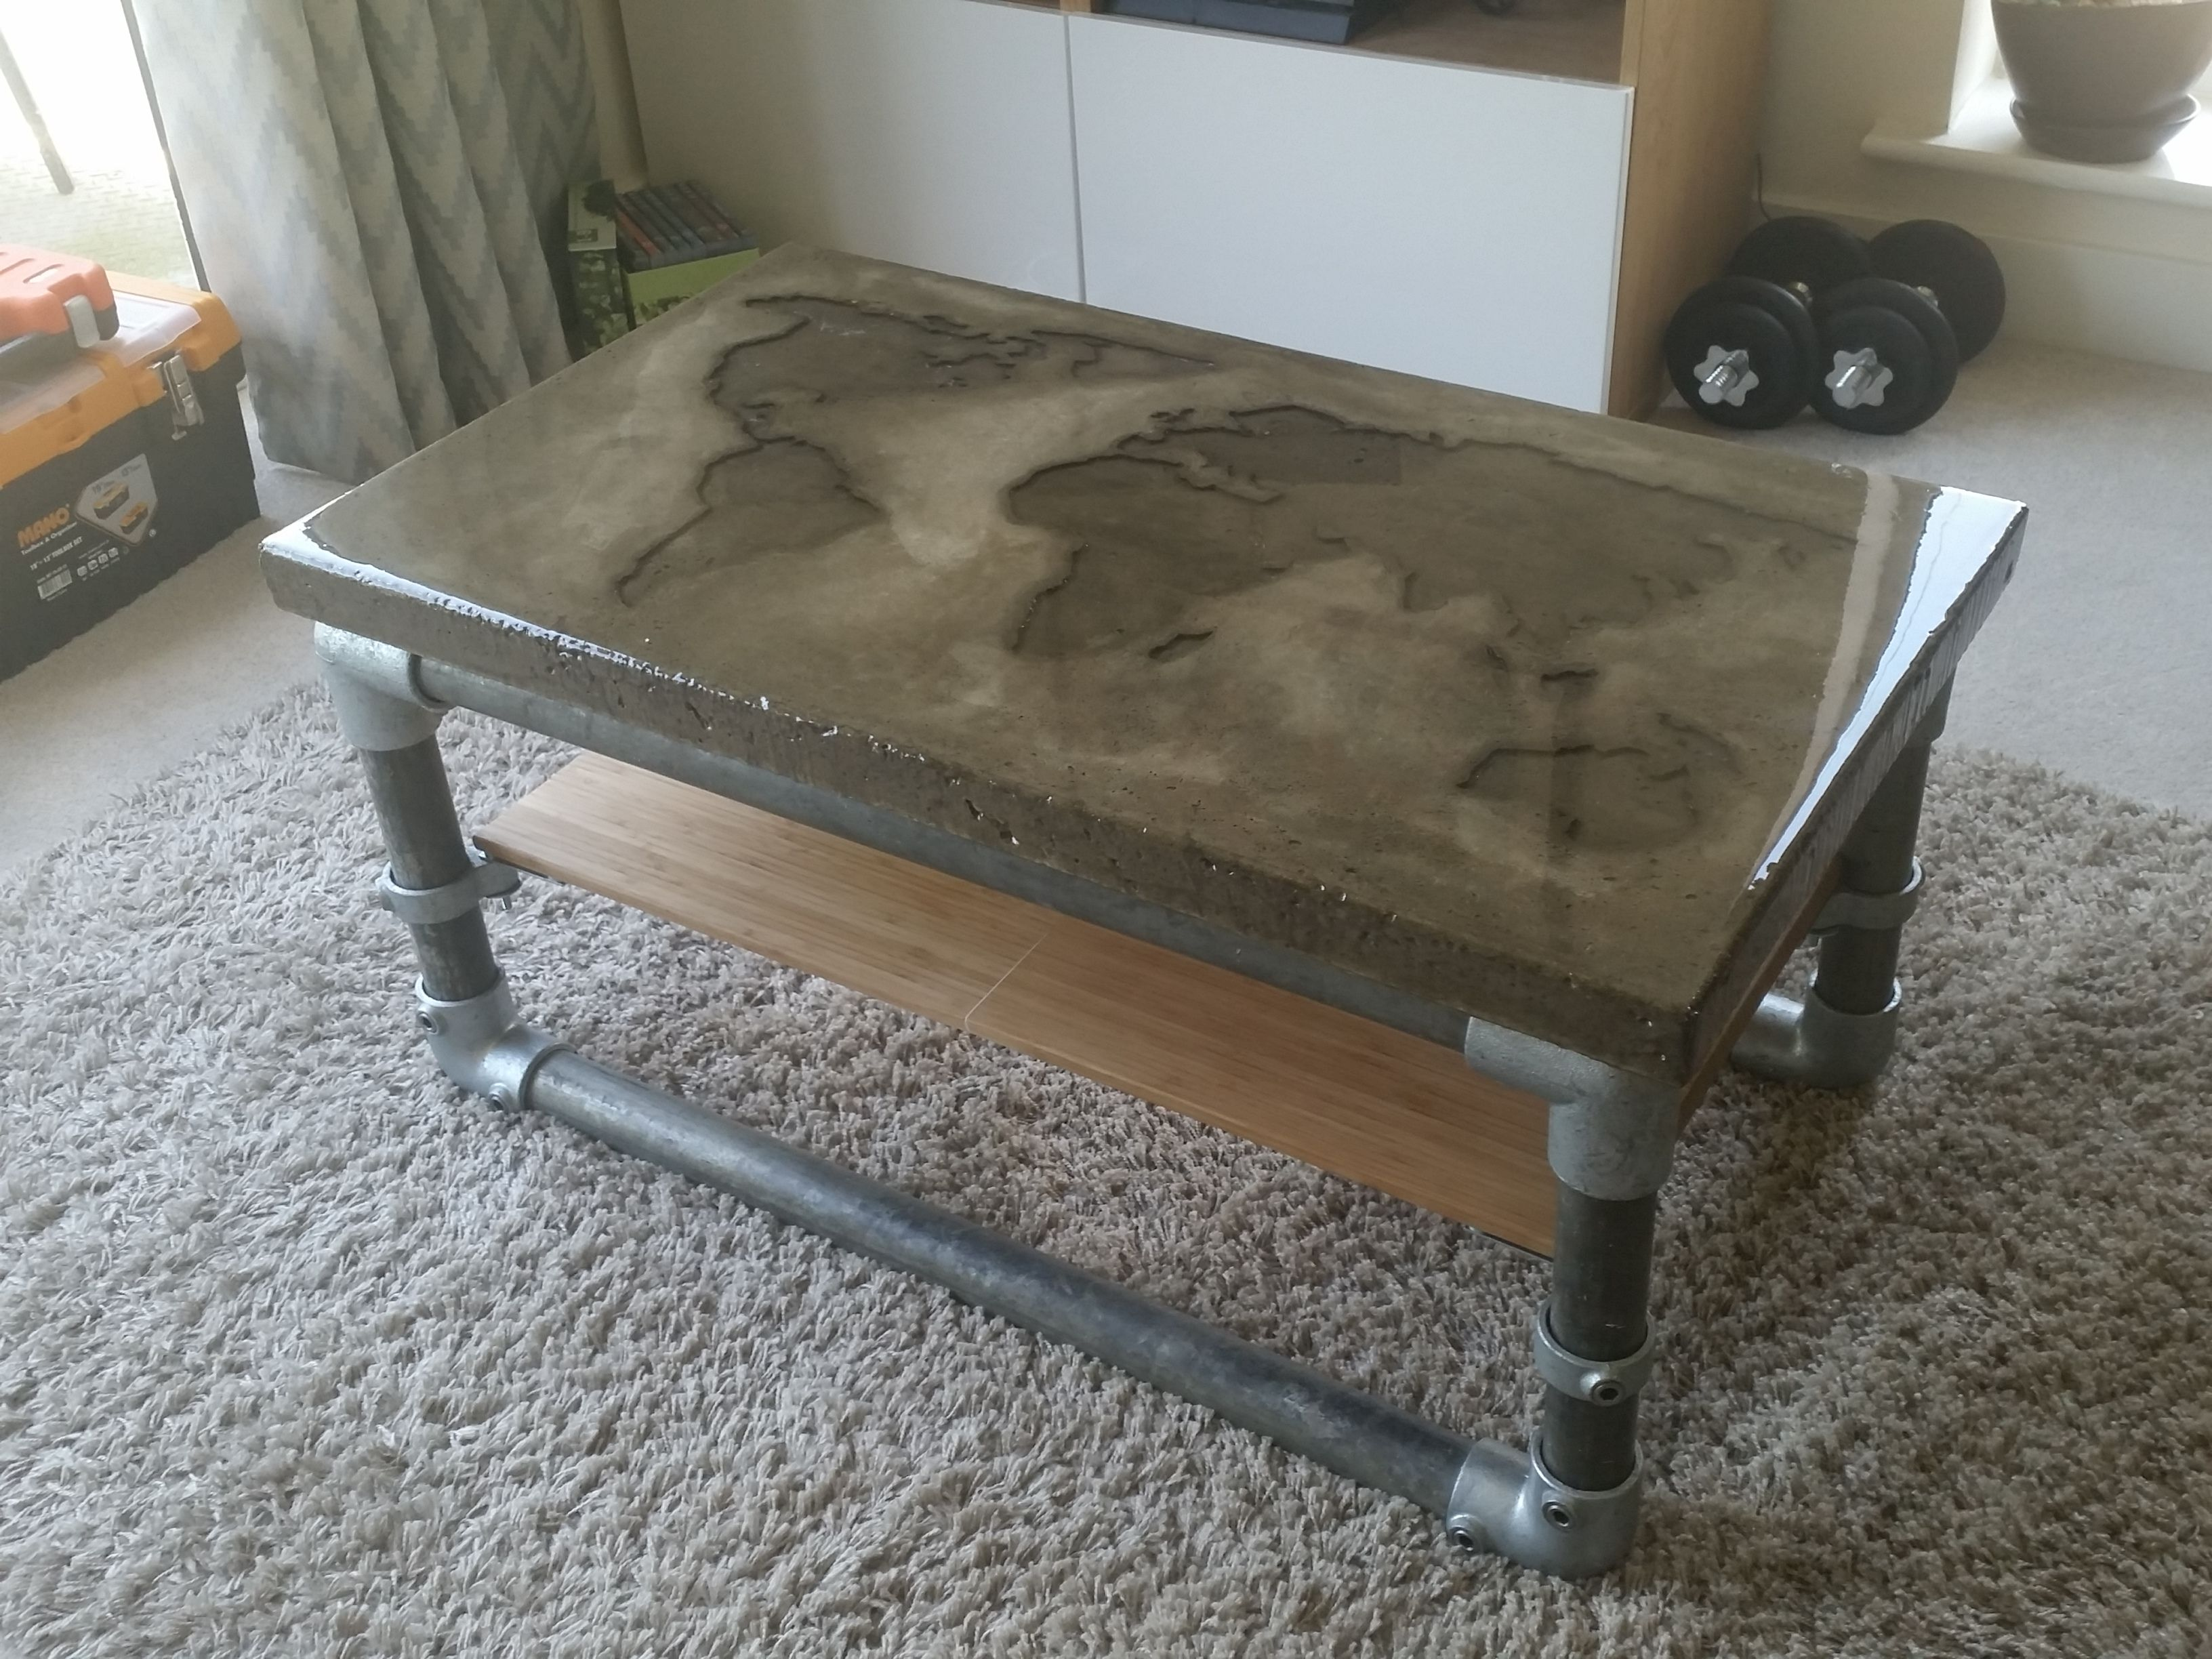 Merveilleux I Made A Concrete Coffee Table With A Recessed World Map.